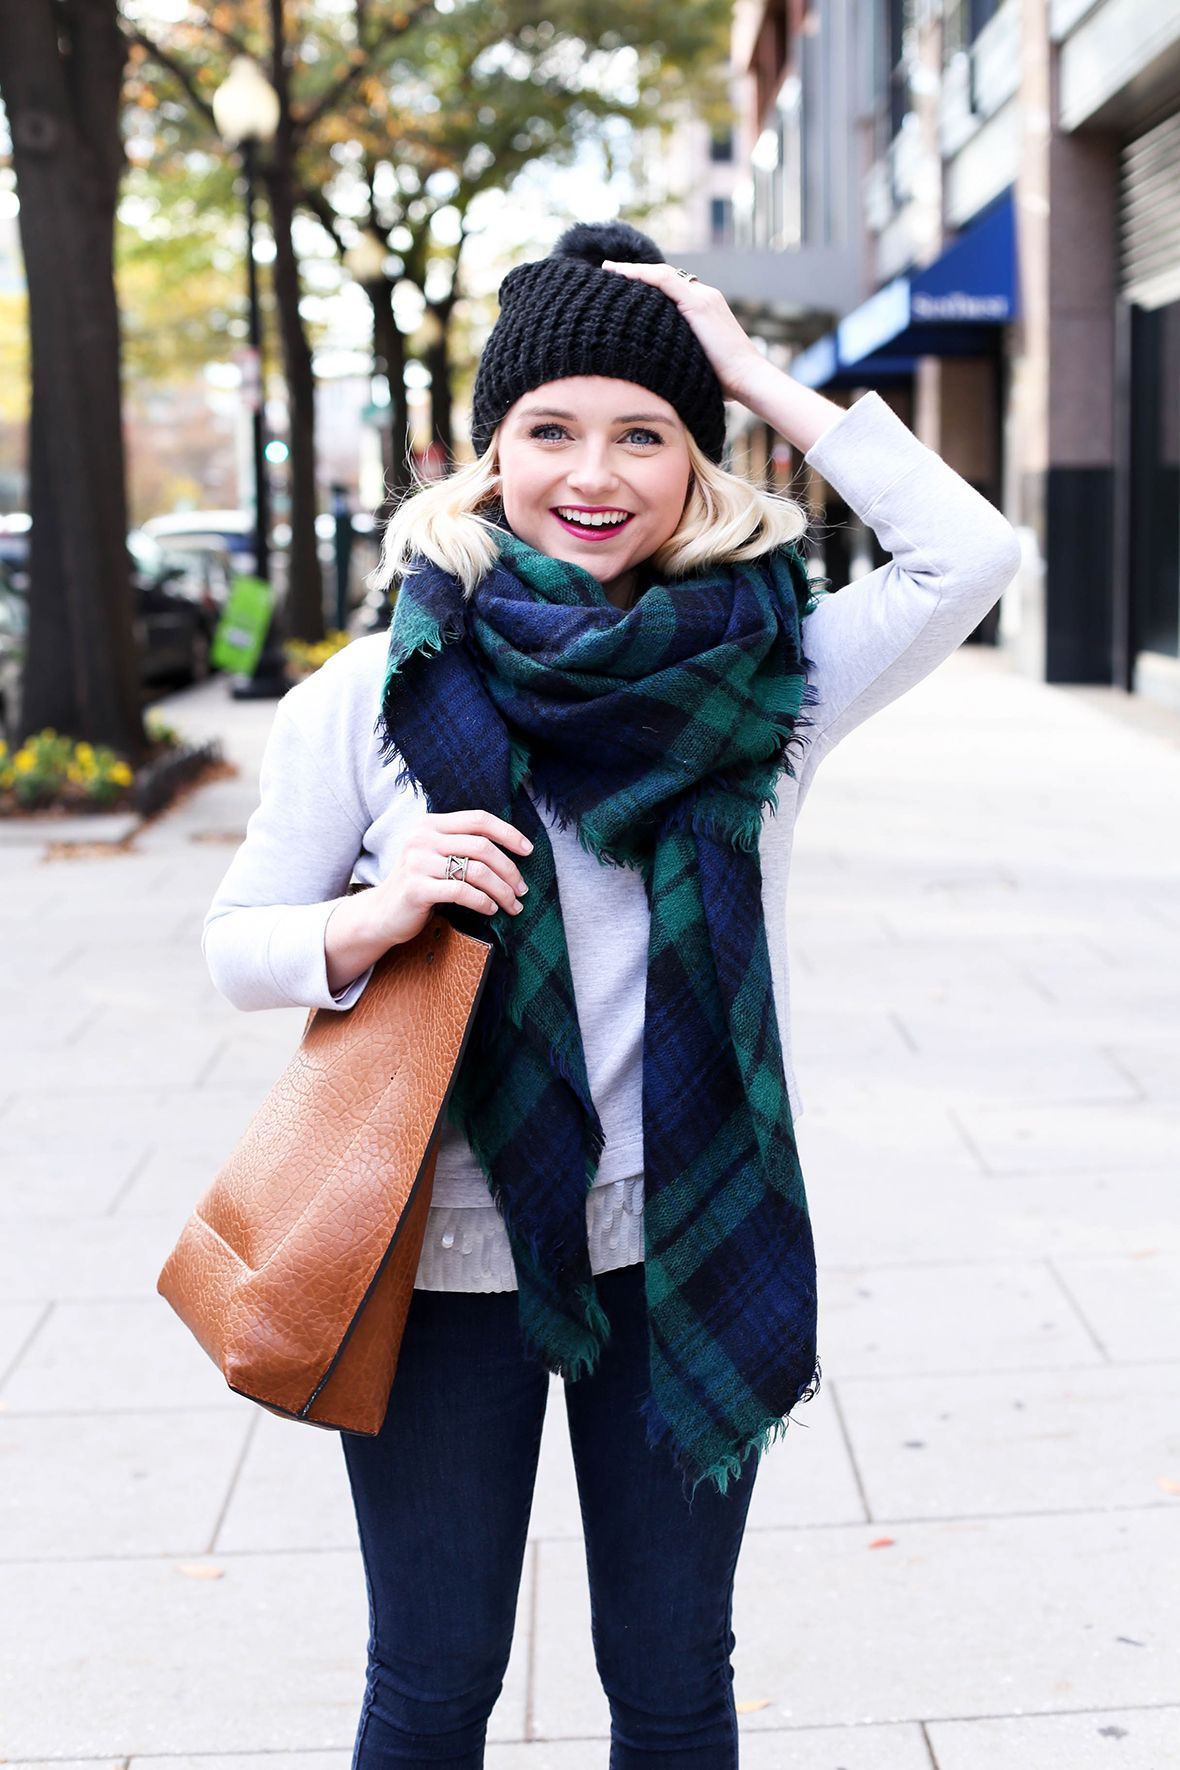 How to Wear Turtle Neck Sweater? 24 Cute Outfit Ideas